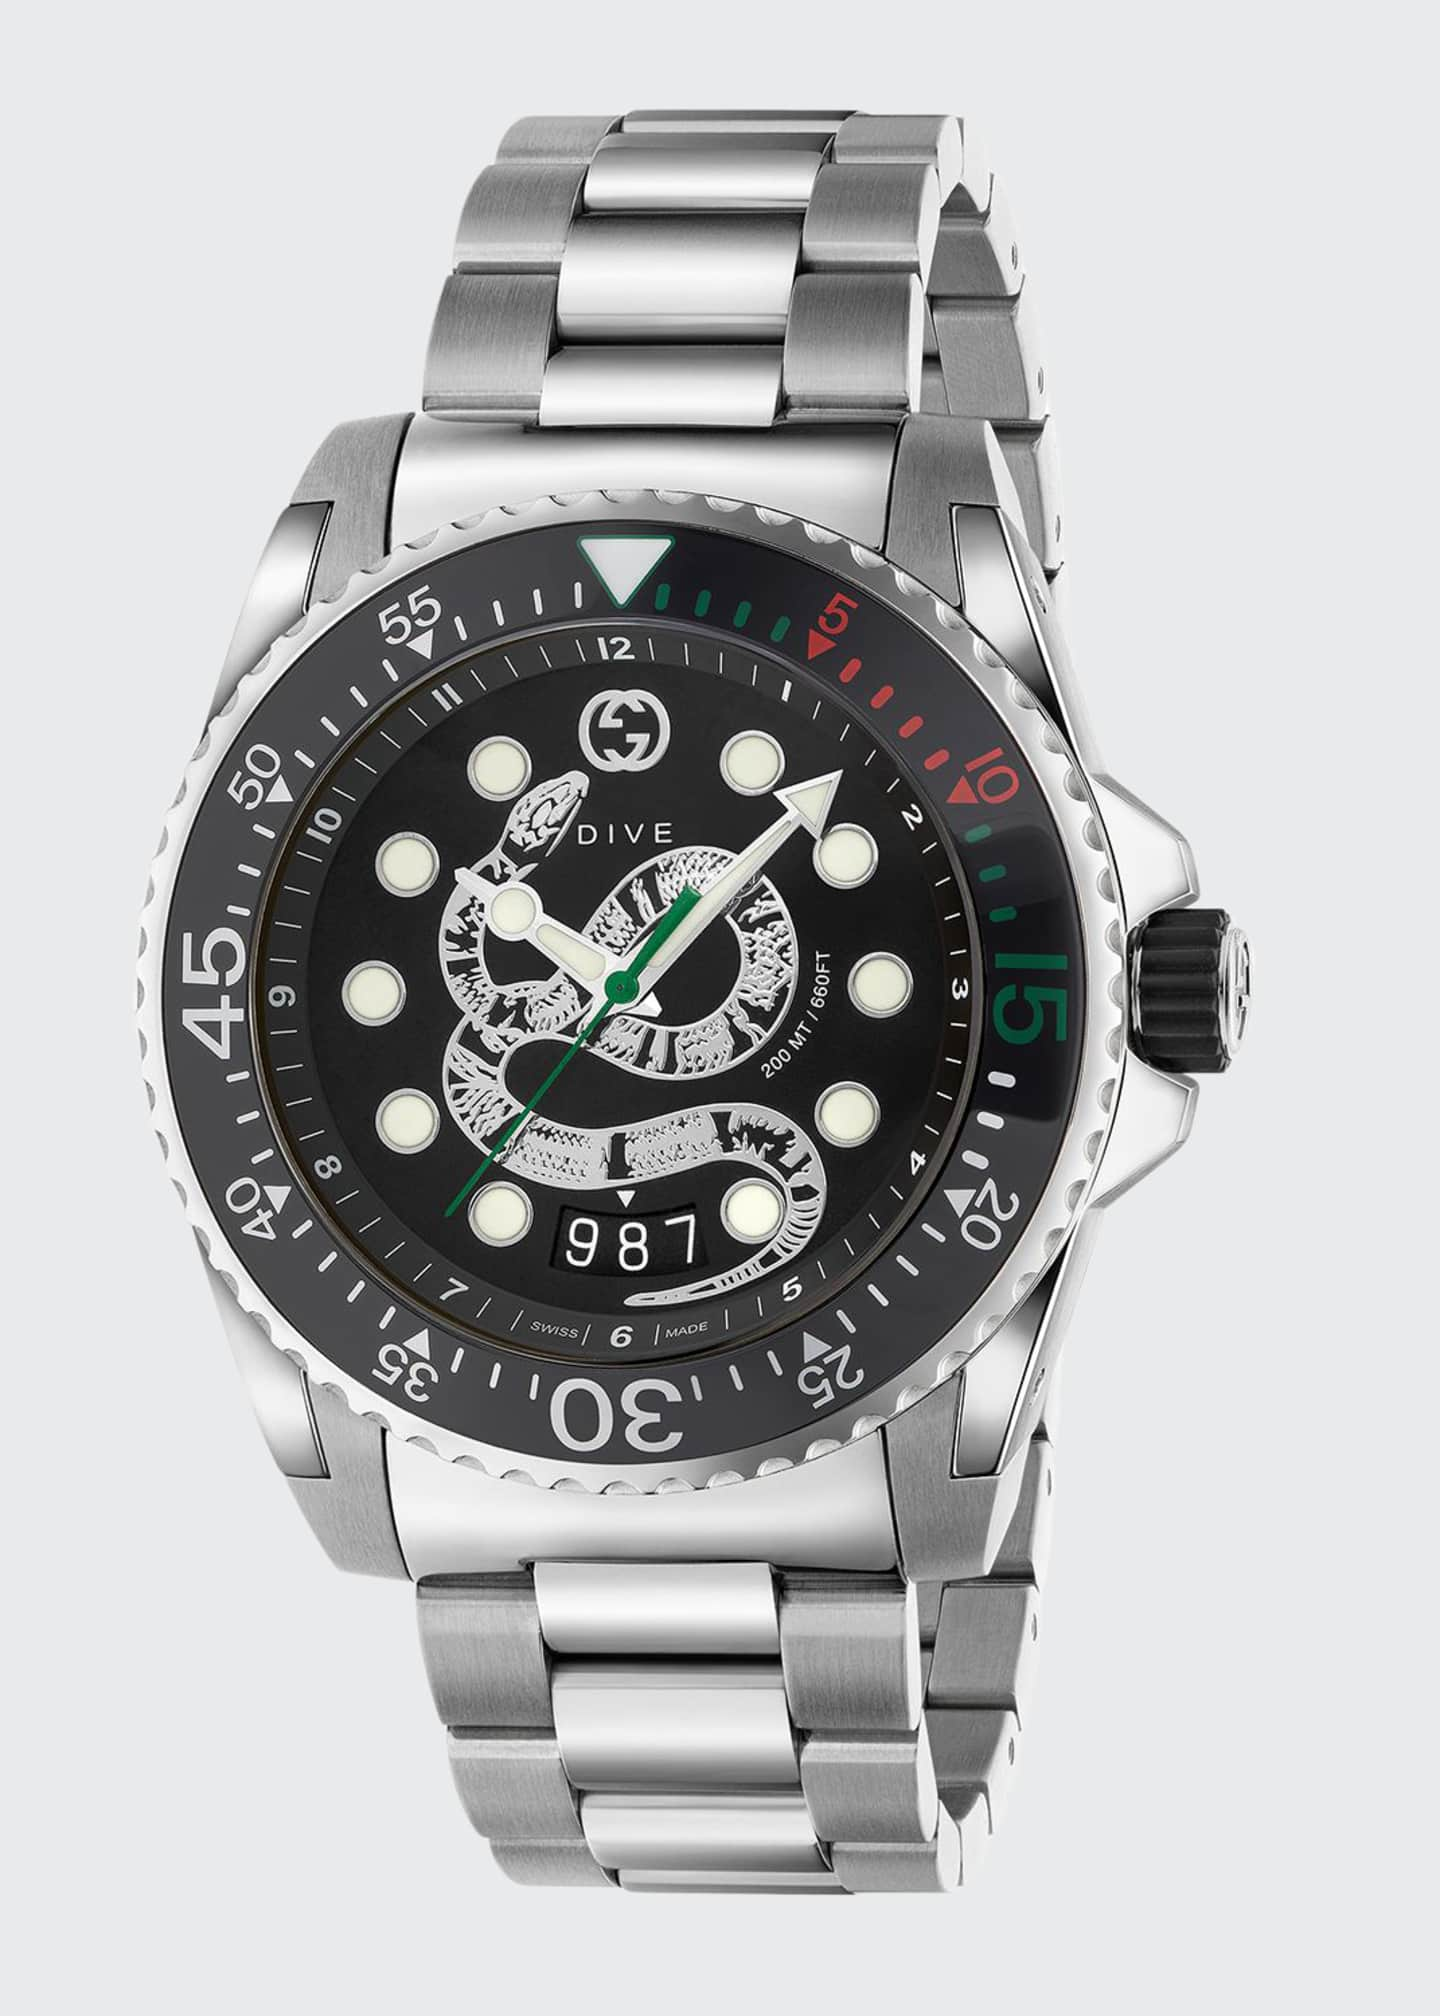 Gucci Men's Dive King Snake Stainless Steel Watch